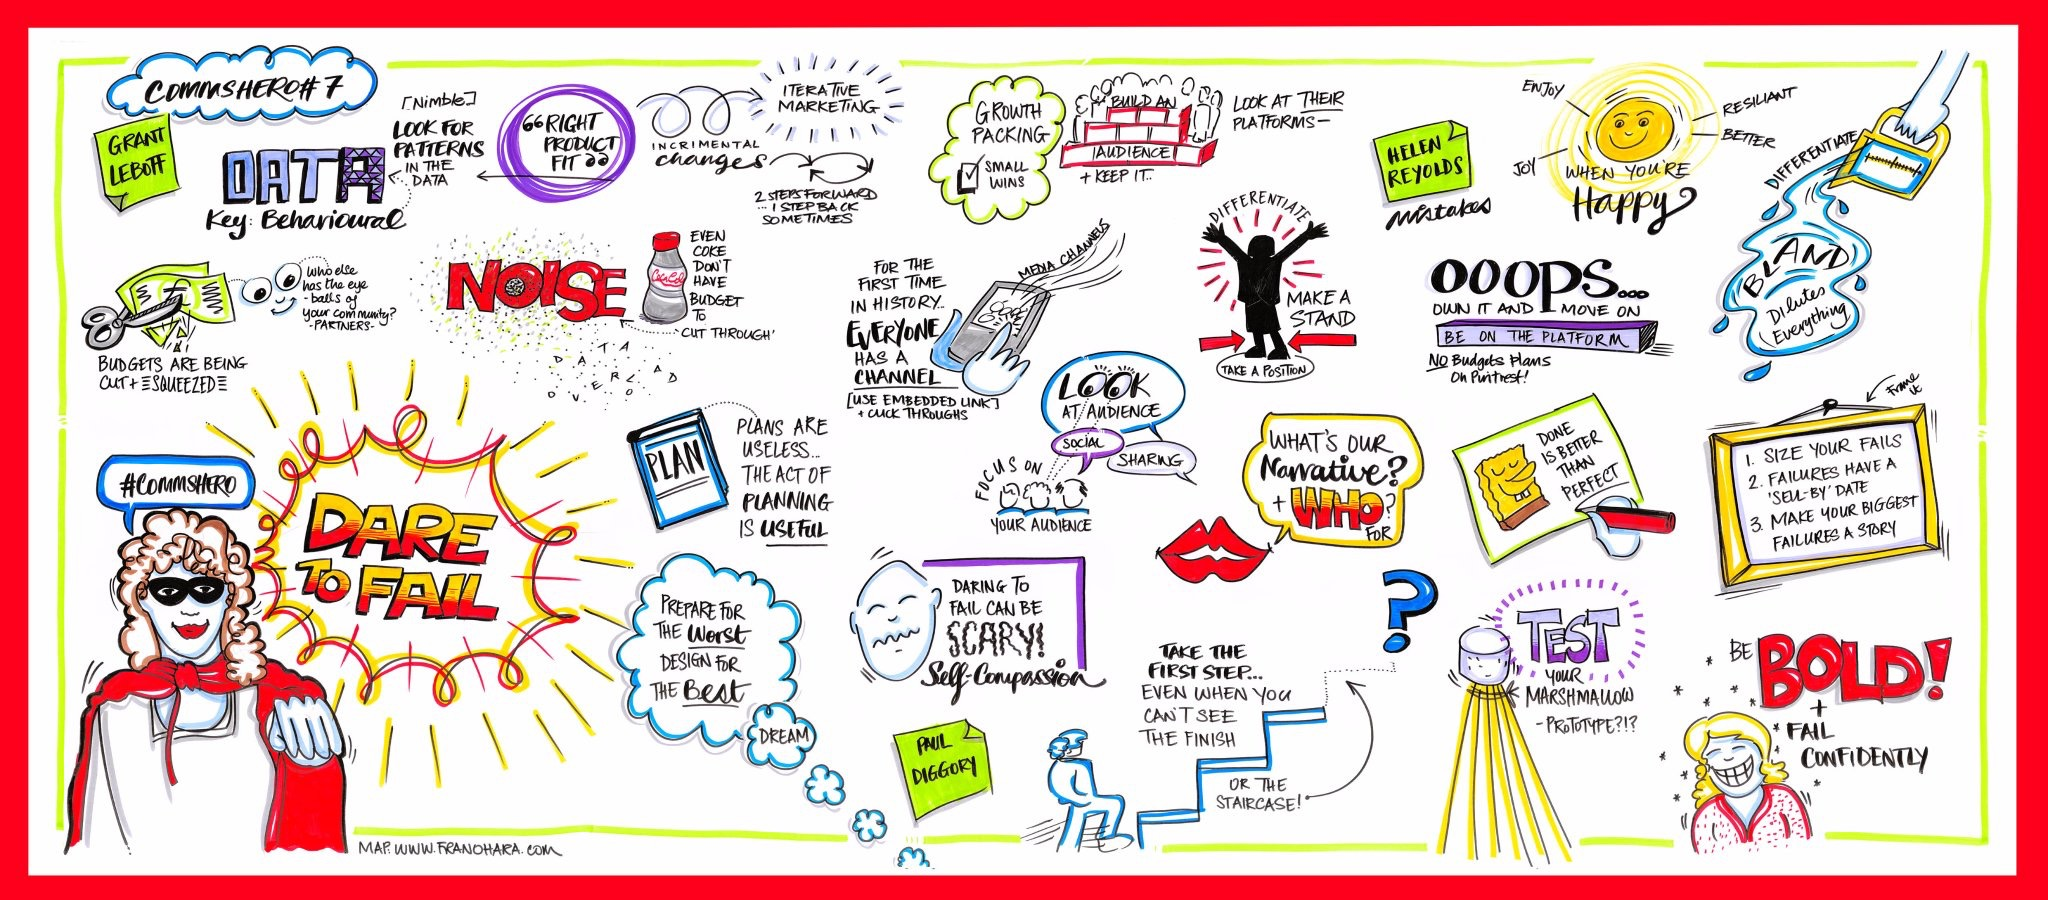 Visual minutes by the fantastic  @FranOHara  from the  Comms Hero  event in Cardiff, 2016